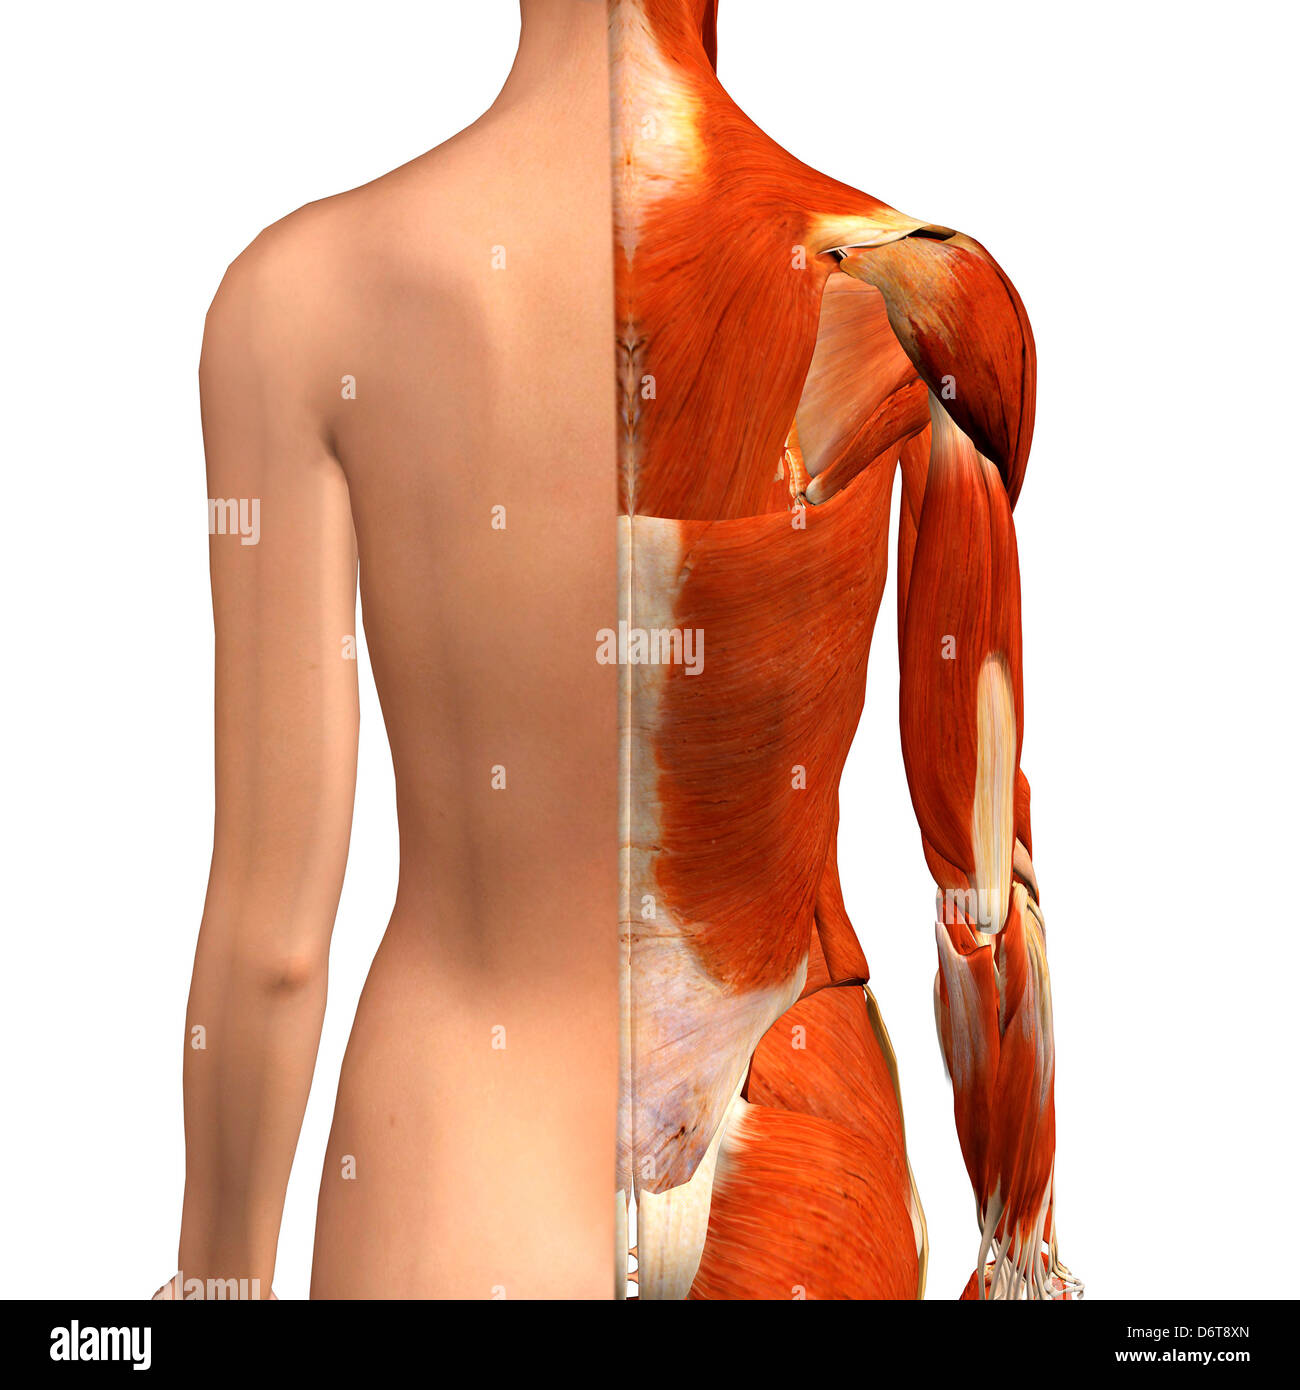 Female Neck Shoulder Muscles Anatomy Stock Photos & Female Neck ...